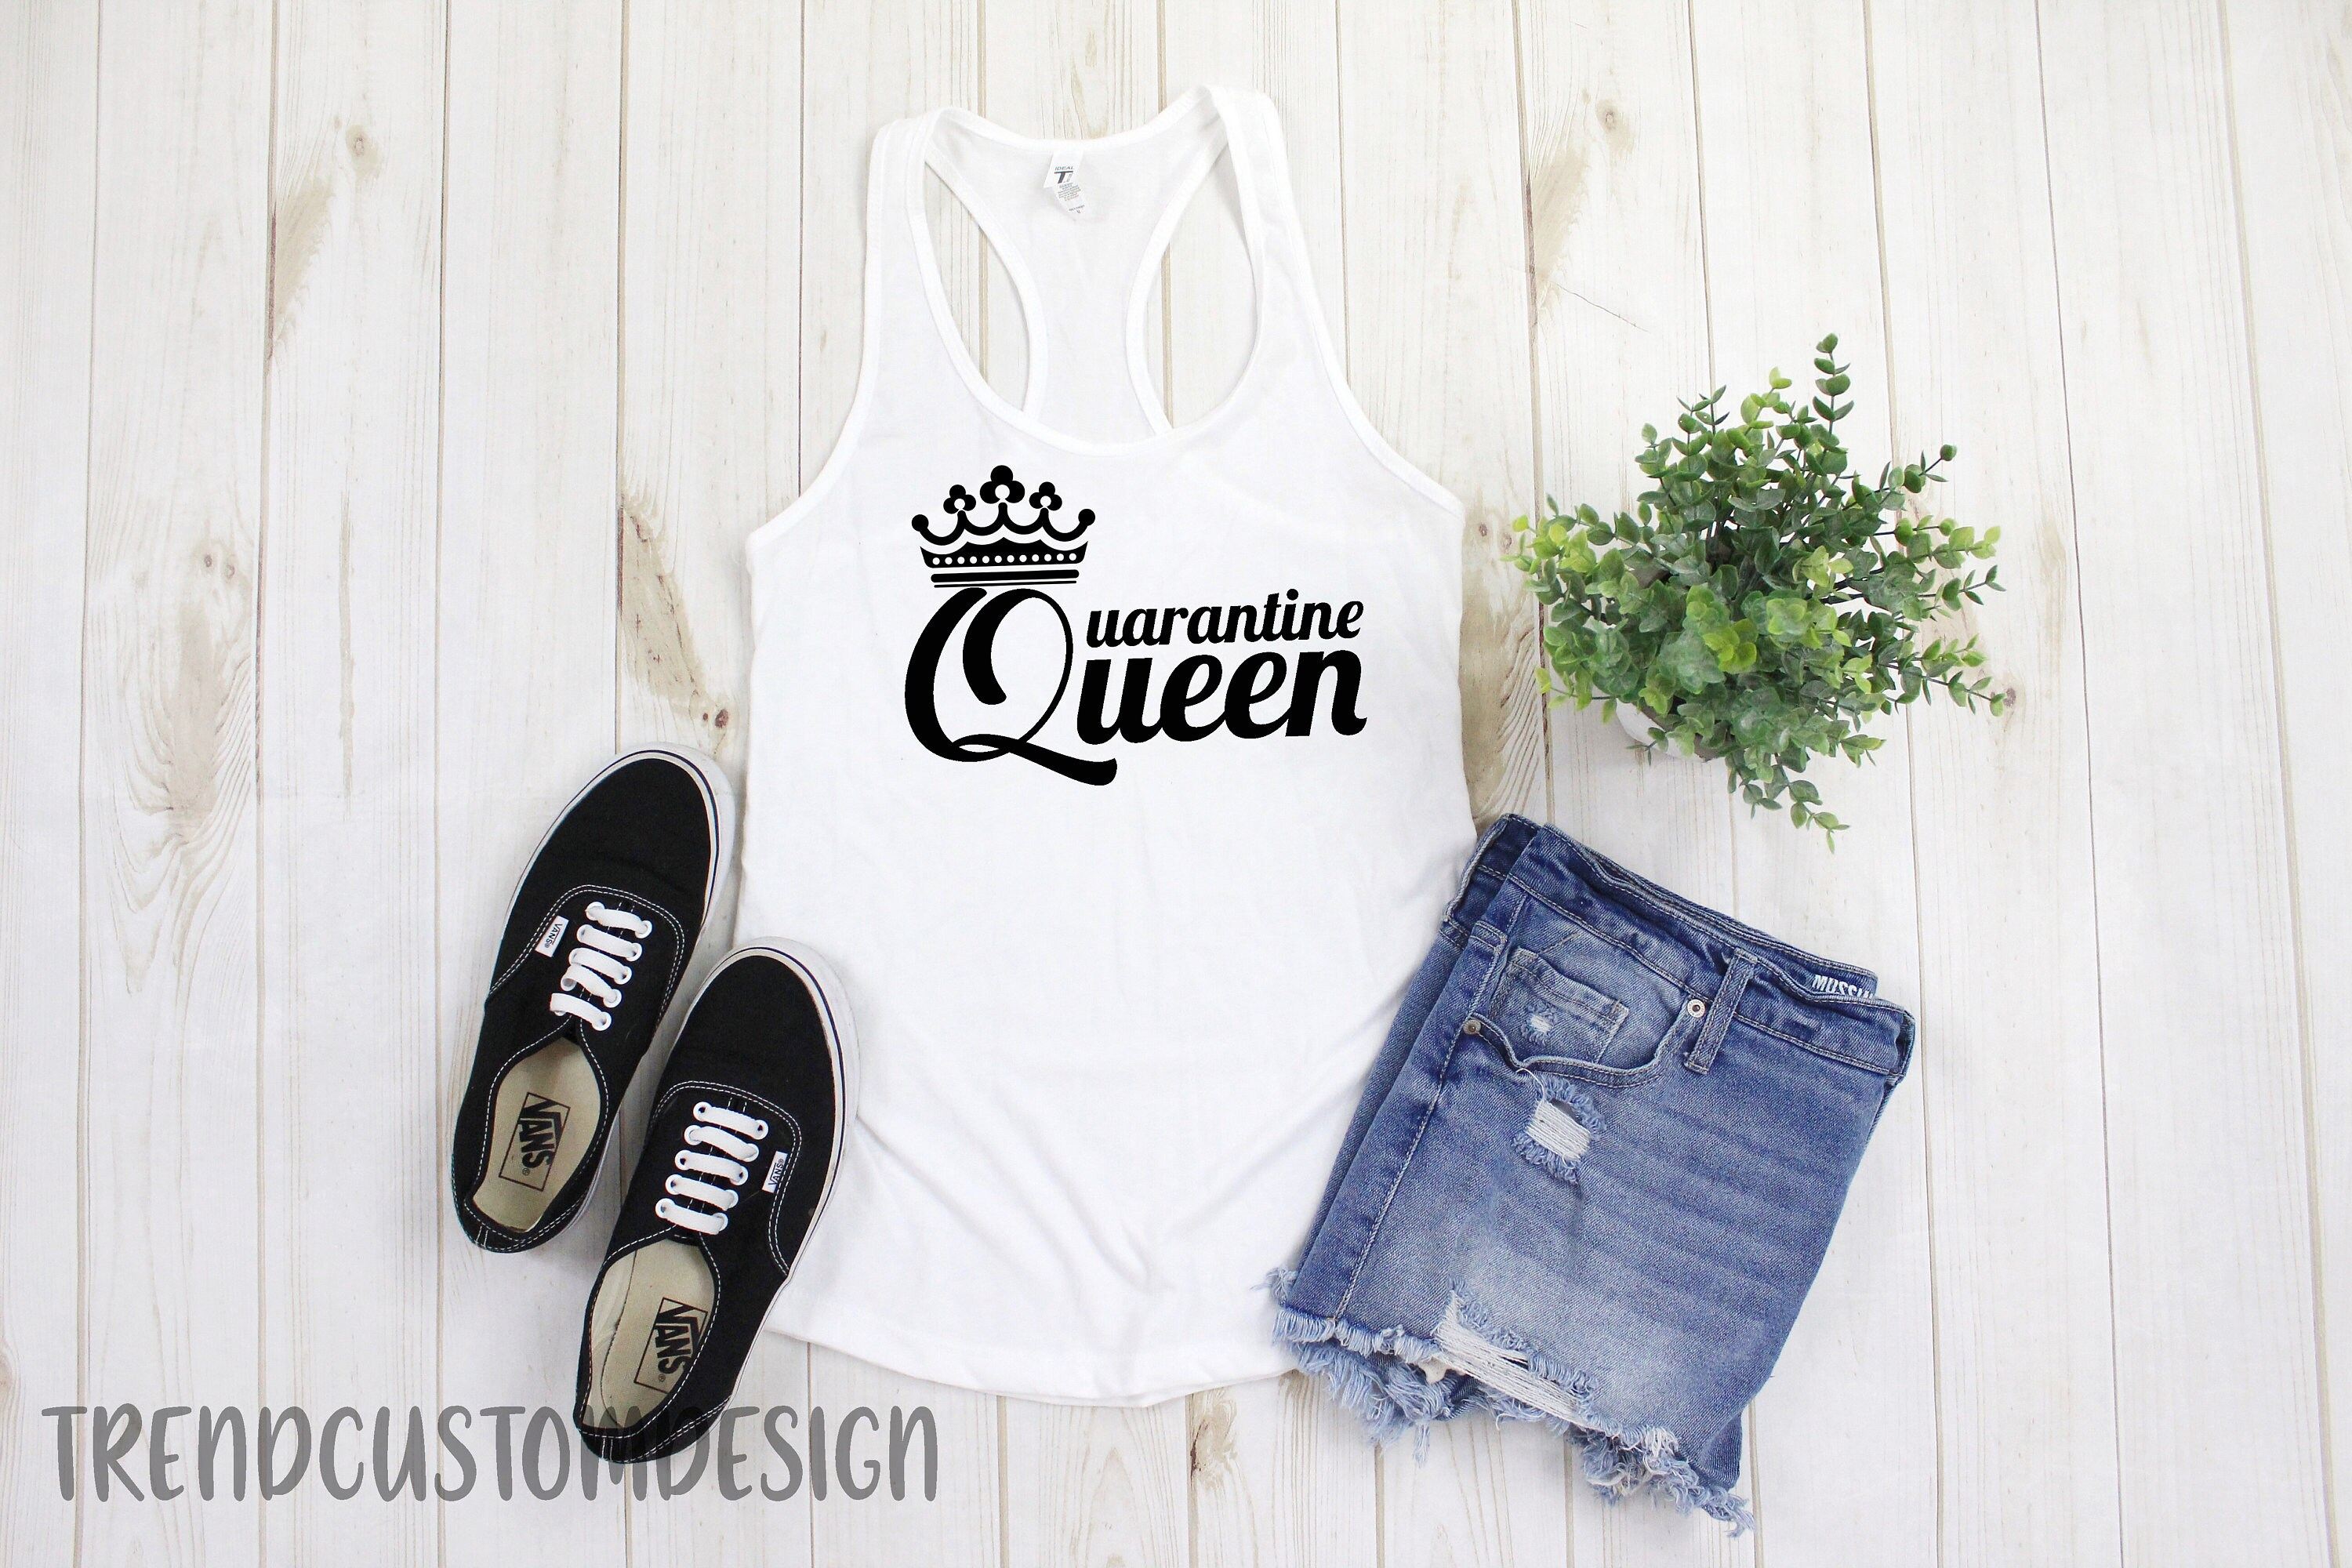 Best quarantined mom shirts from etsy - Quarantine Queen Tank